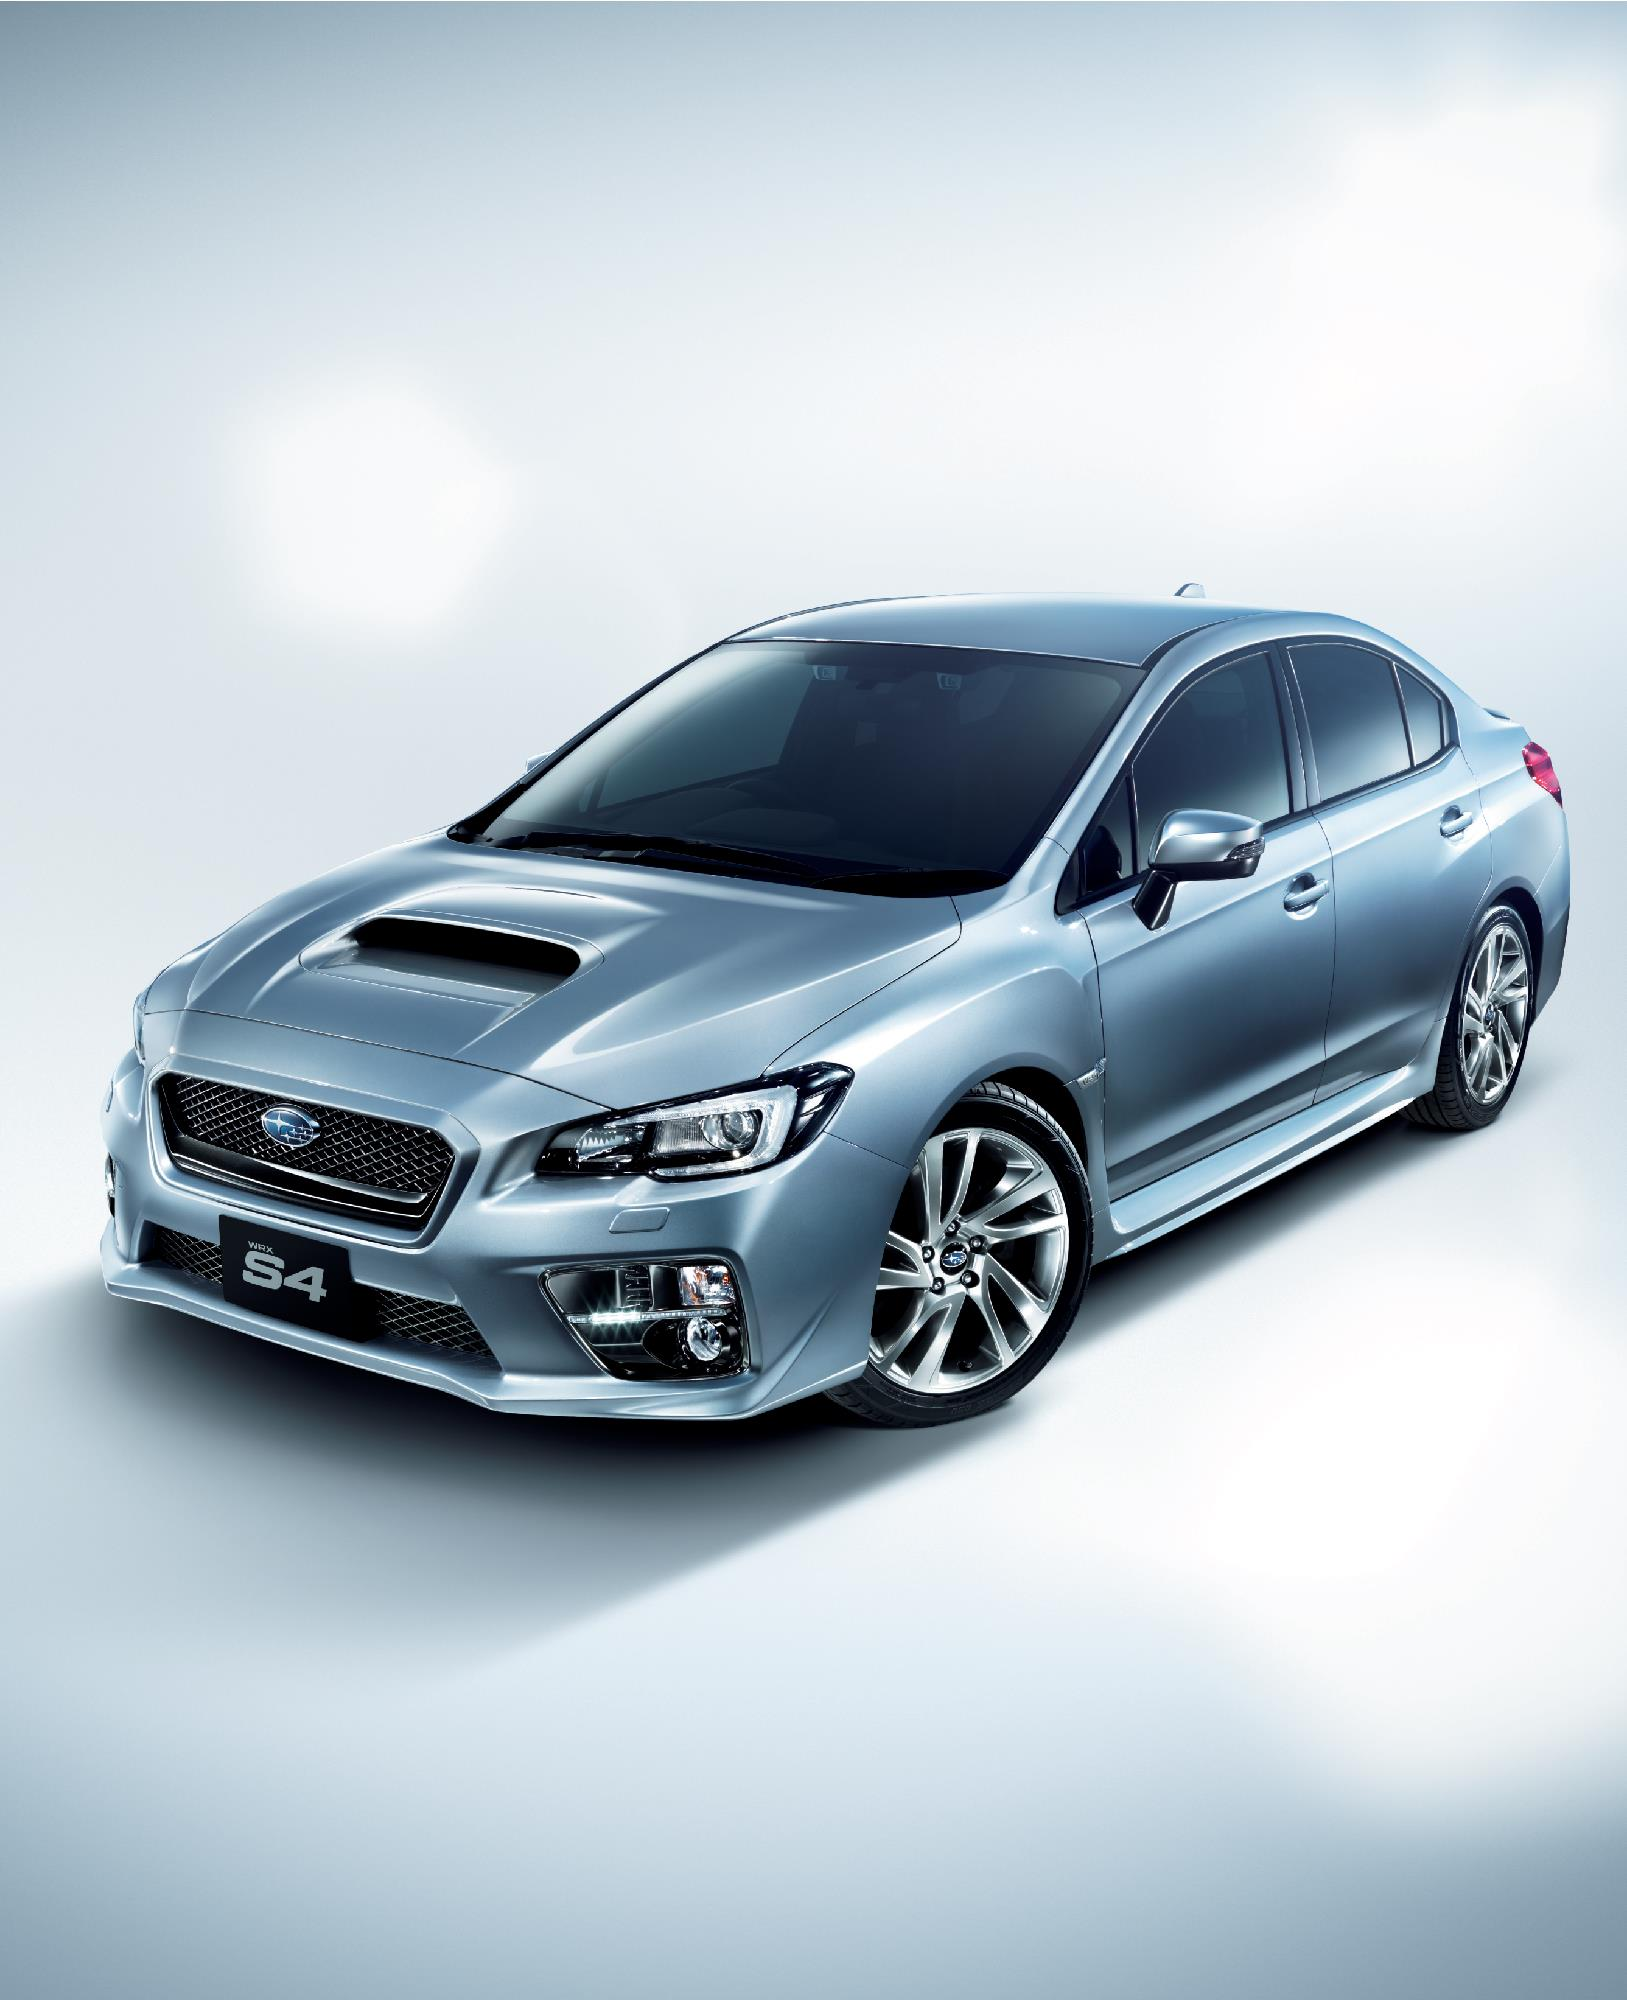 The Subaru Impreza Was Introduced In Early 1993 As A Four Door Sedan Or  Five Door Hatchback. A Two Door Coupe Was Launched Two Years Later.